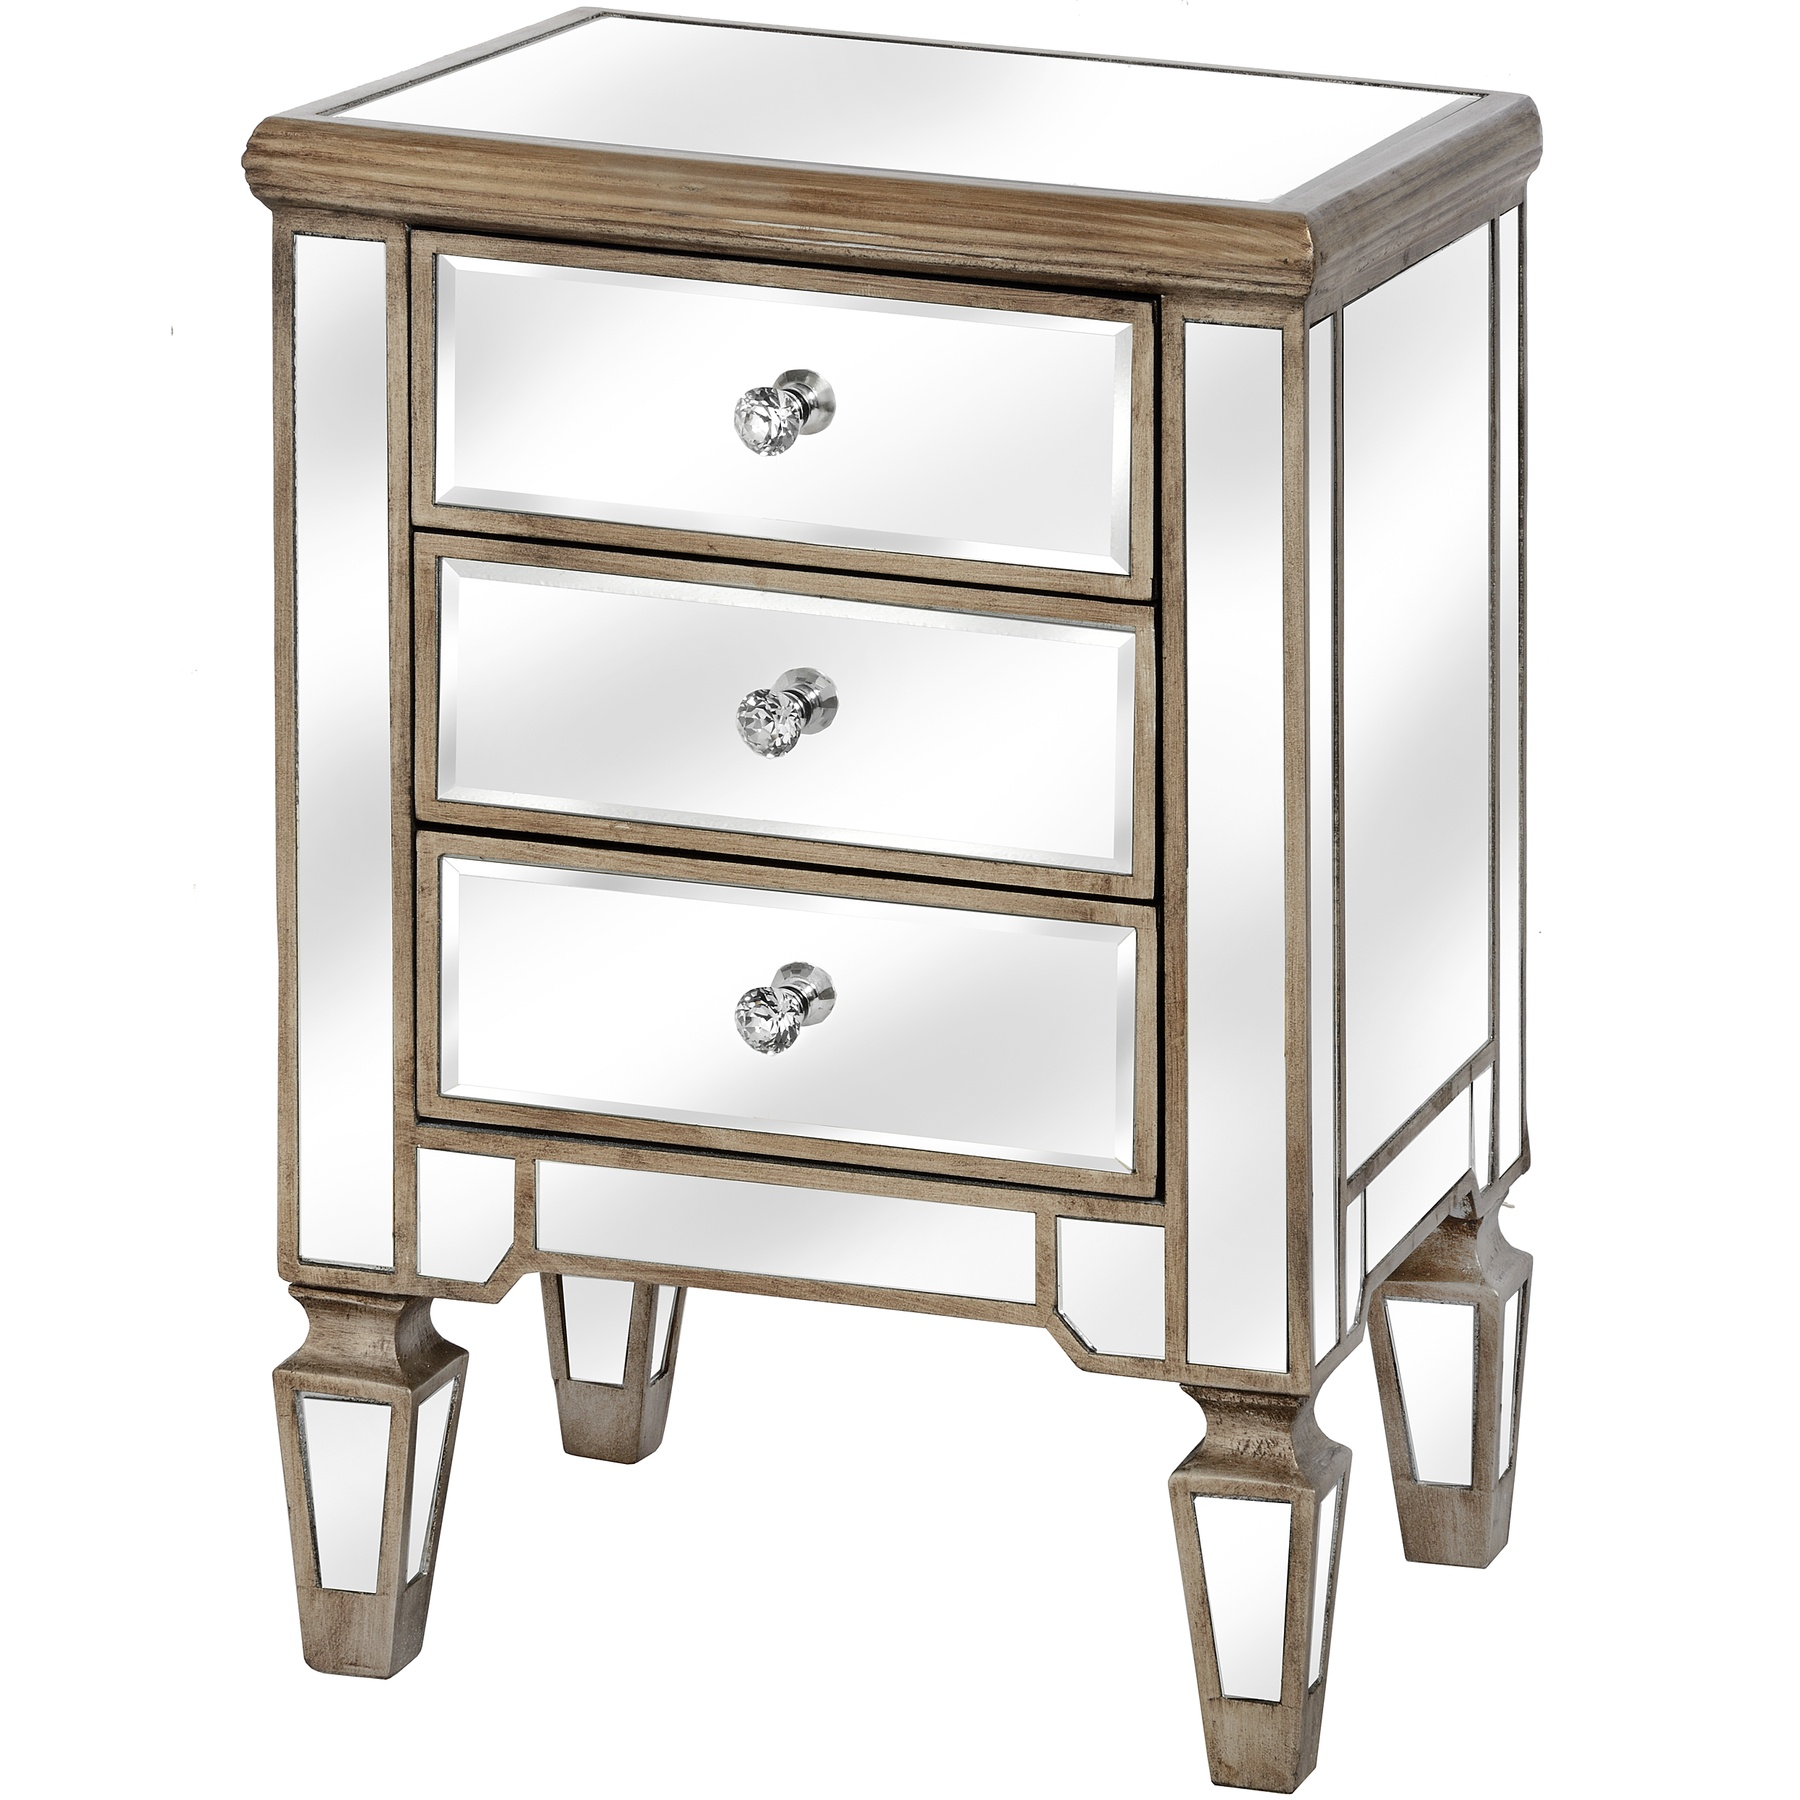 The Belfry Collection Three Drawer Mirrored Bedside